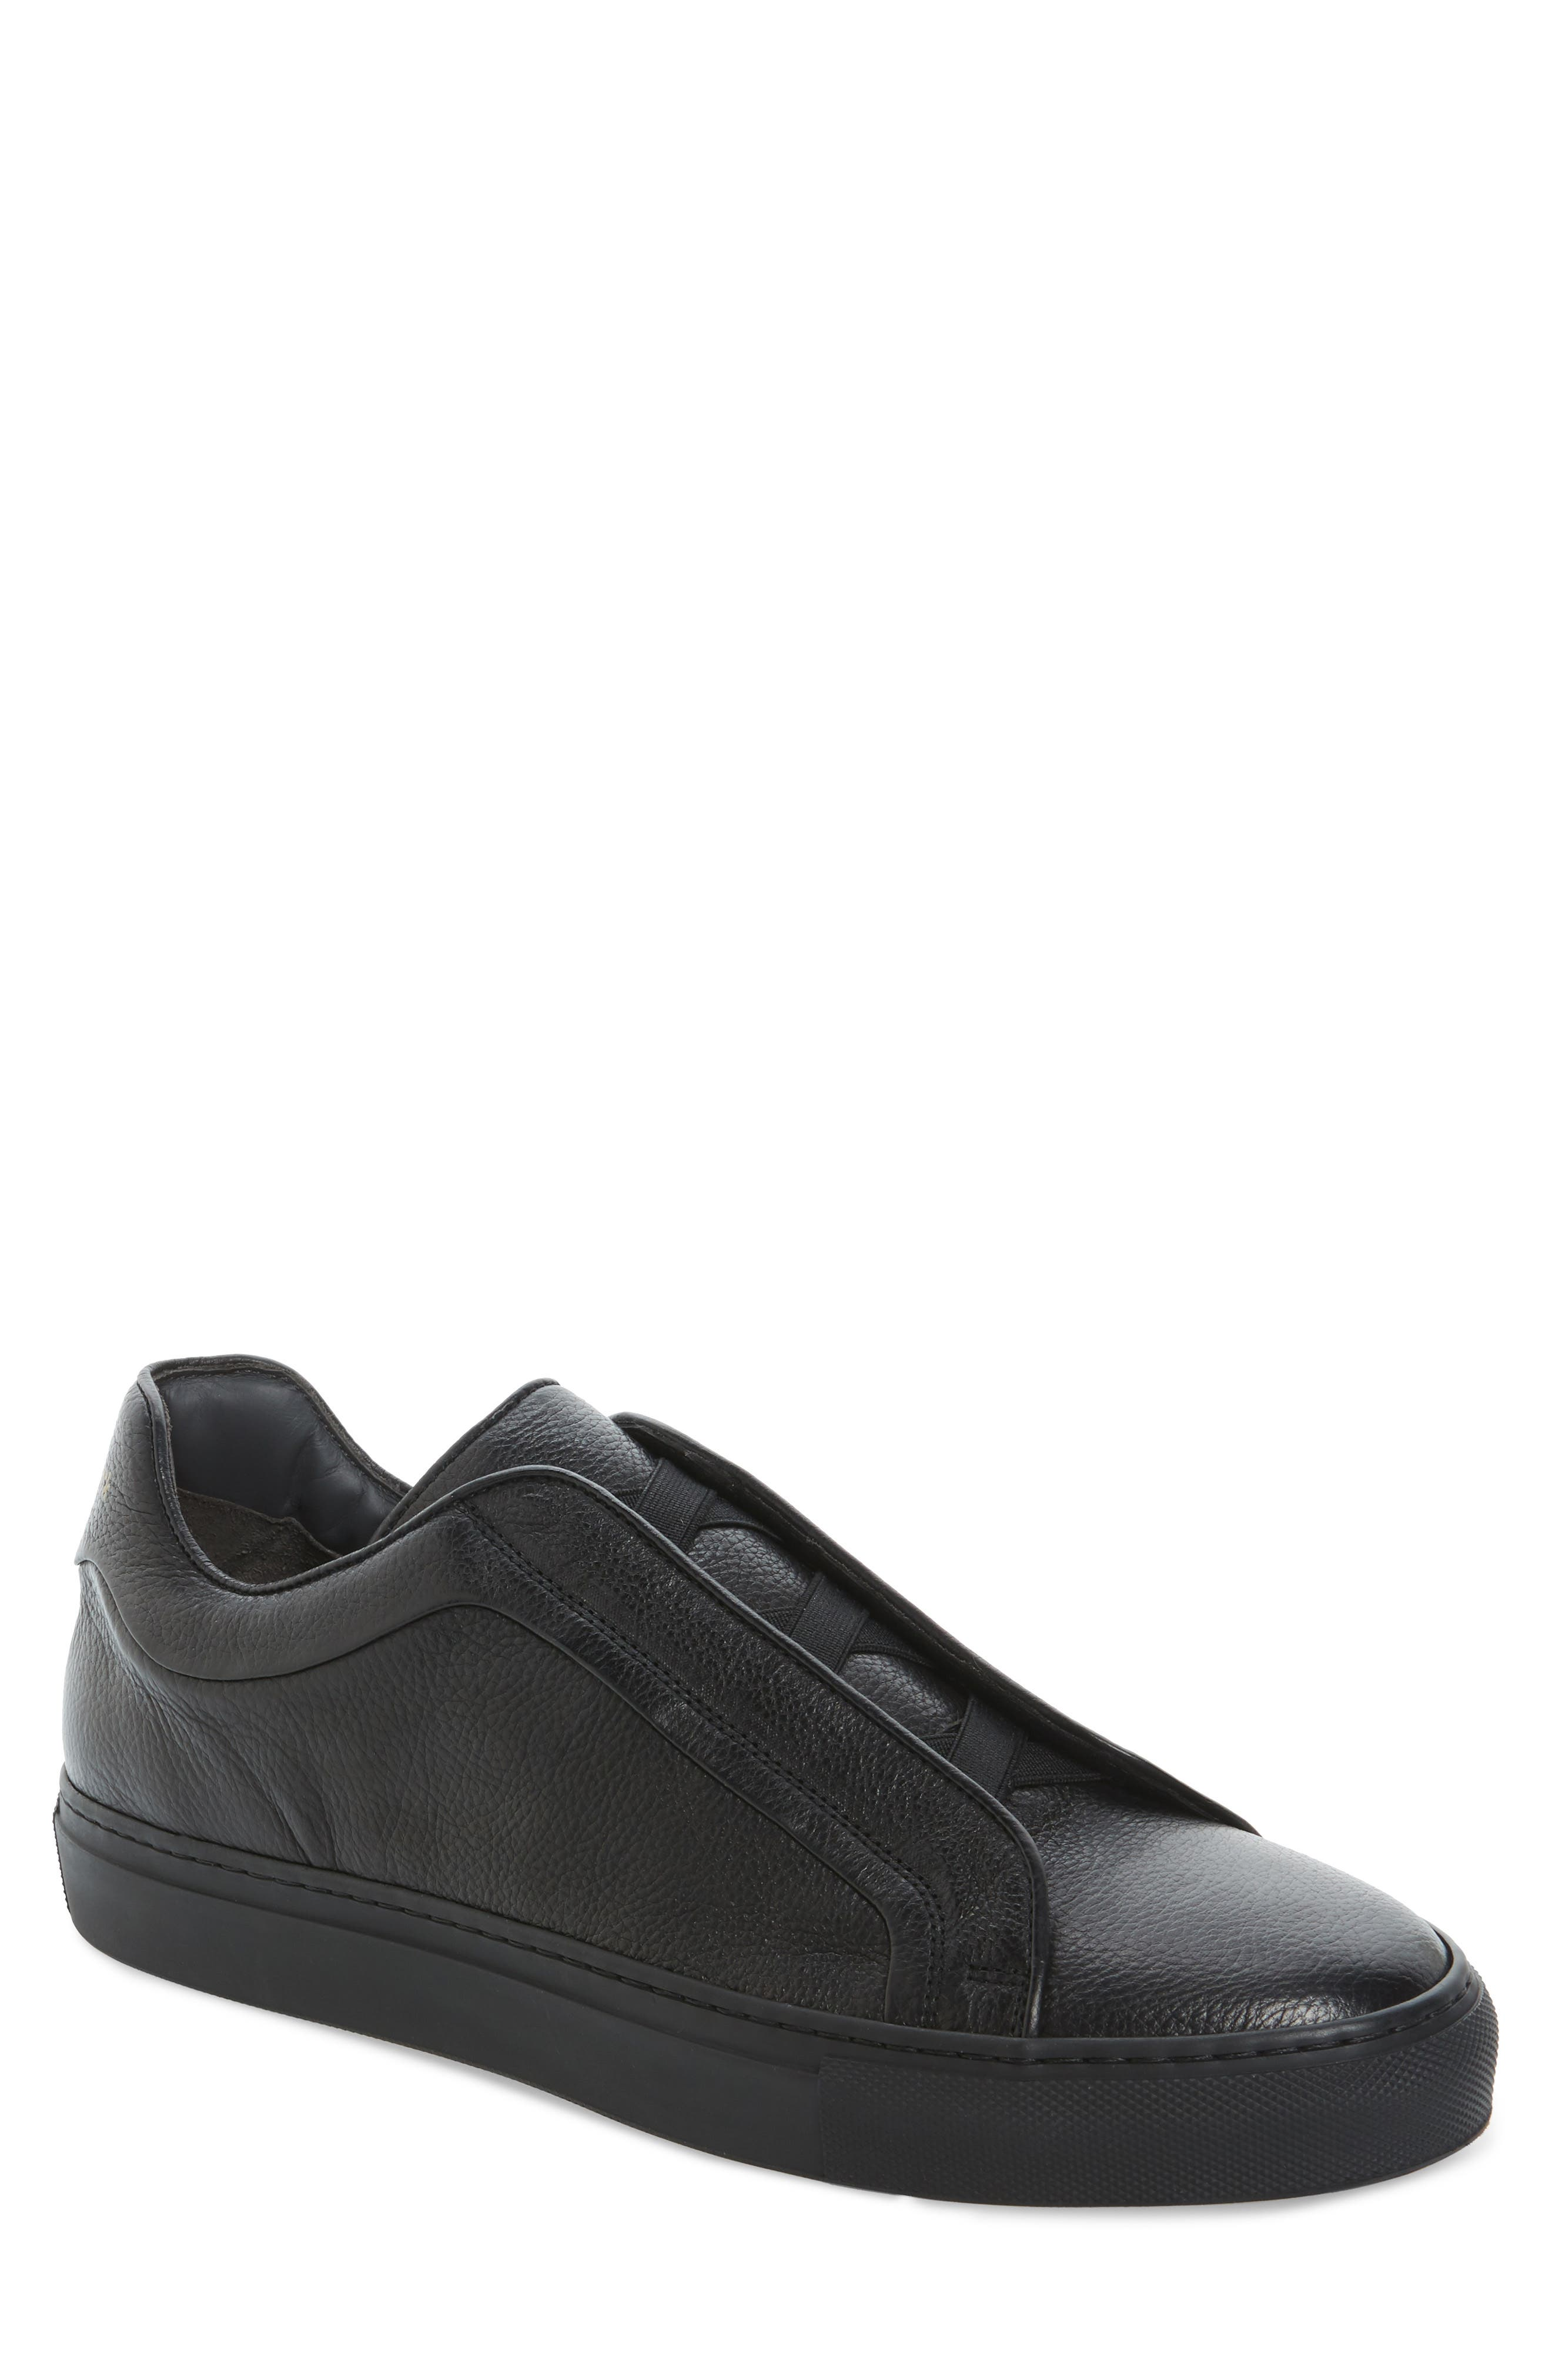 Cliff Sneaker,                         Main,                         color, Black Leather